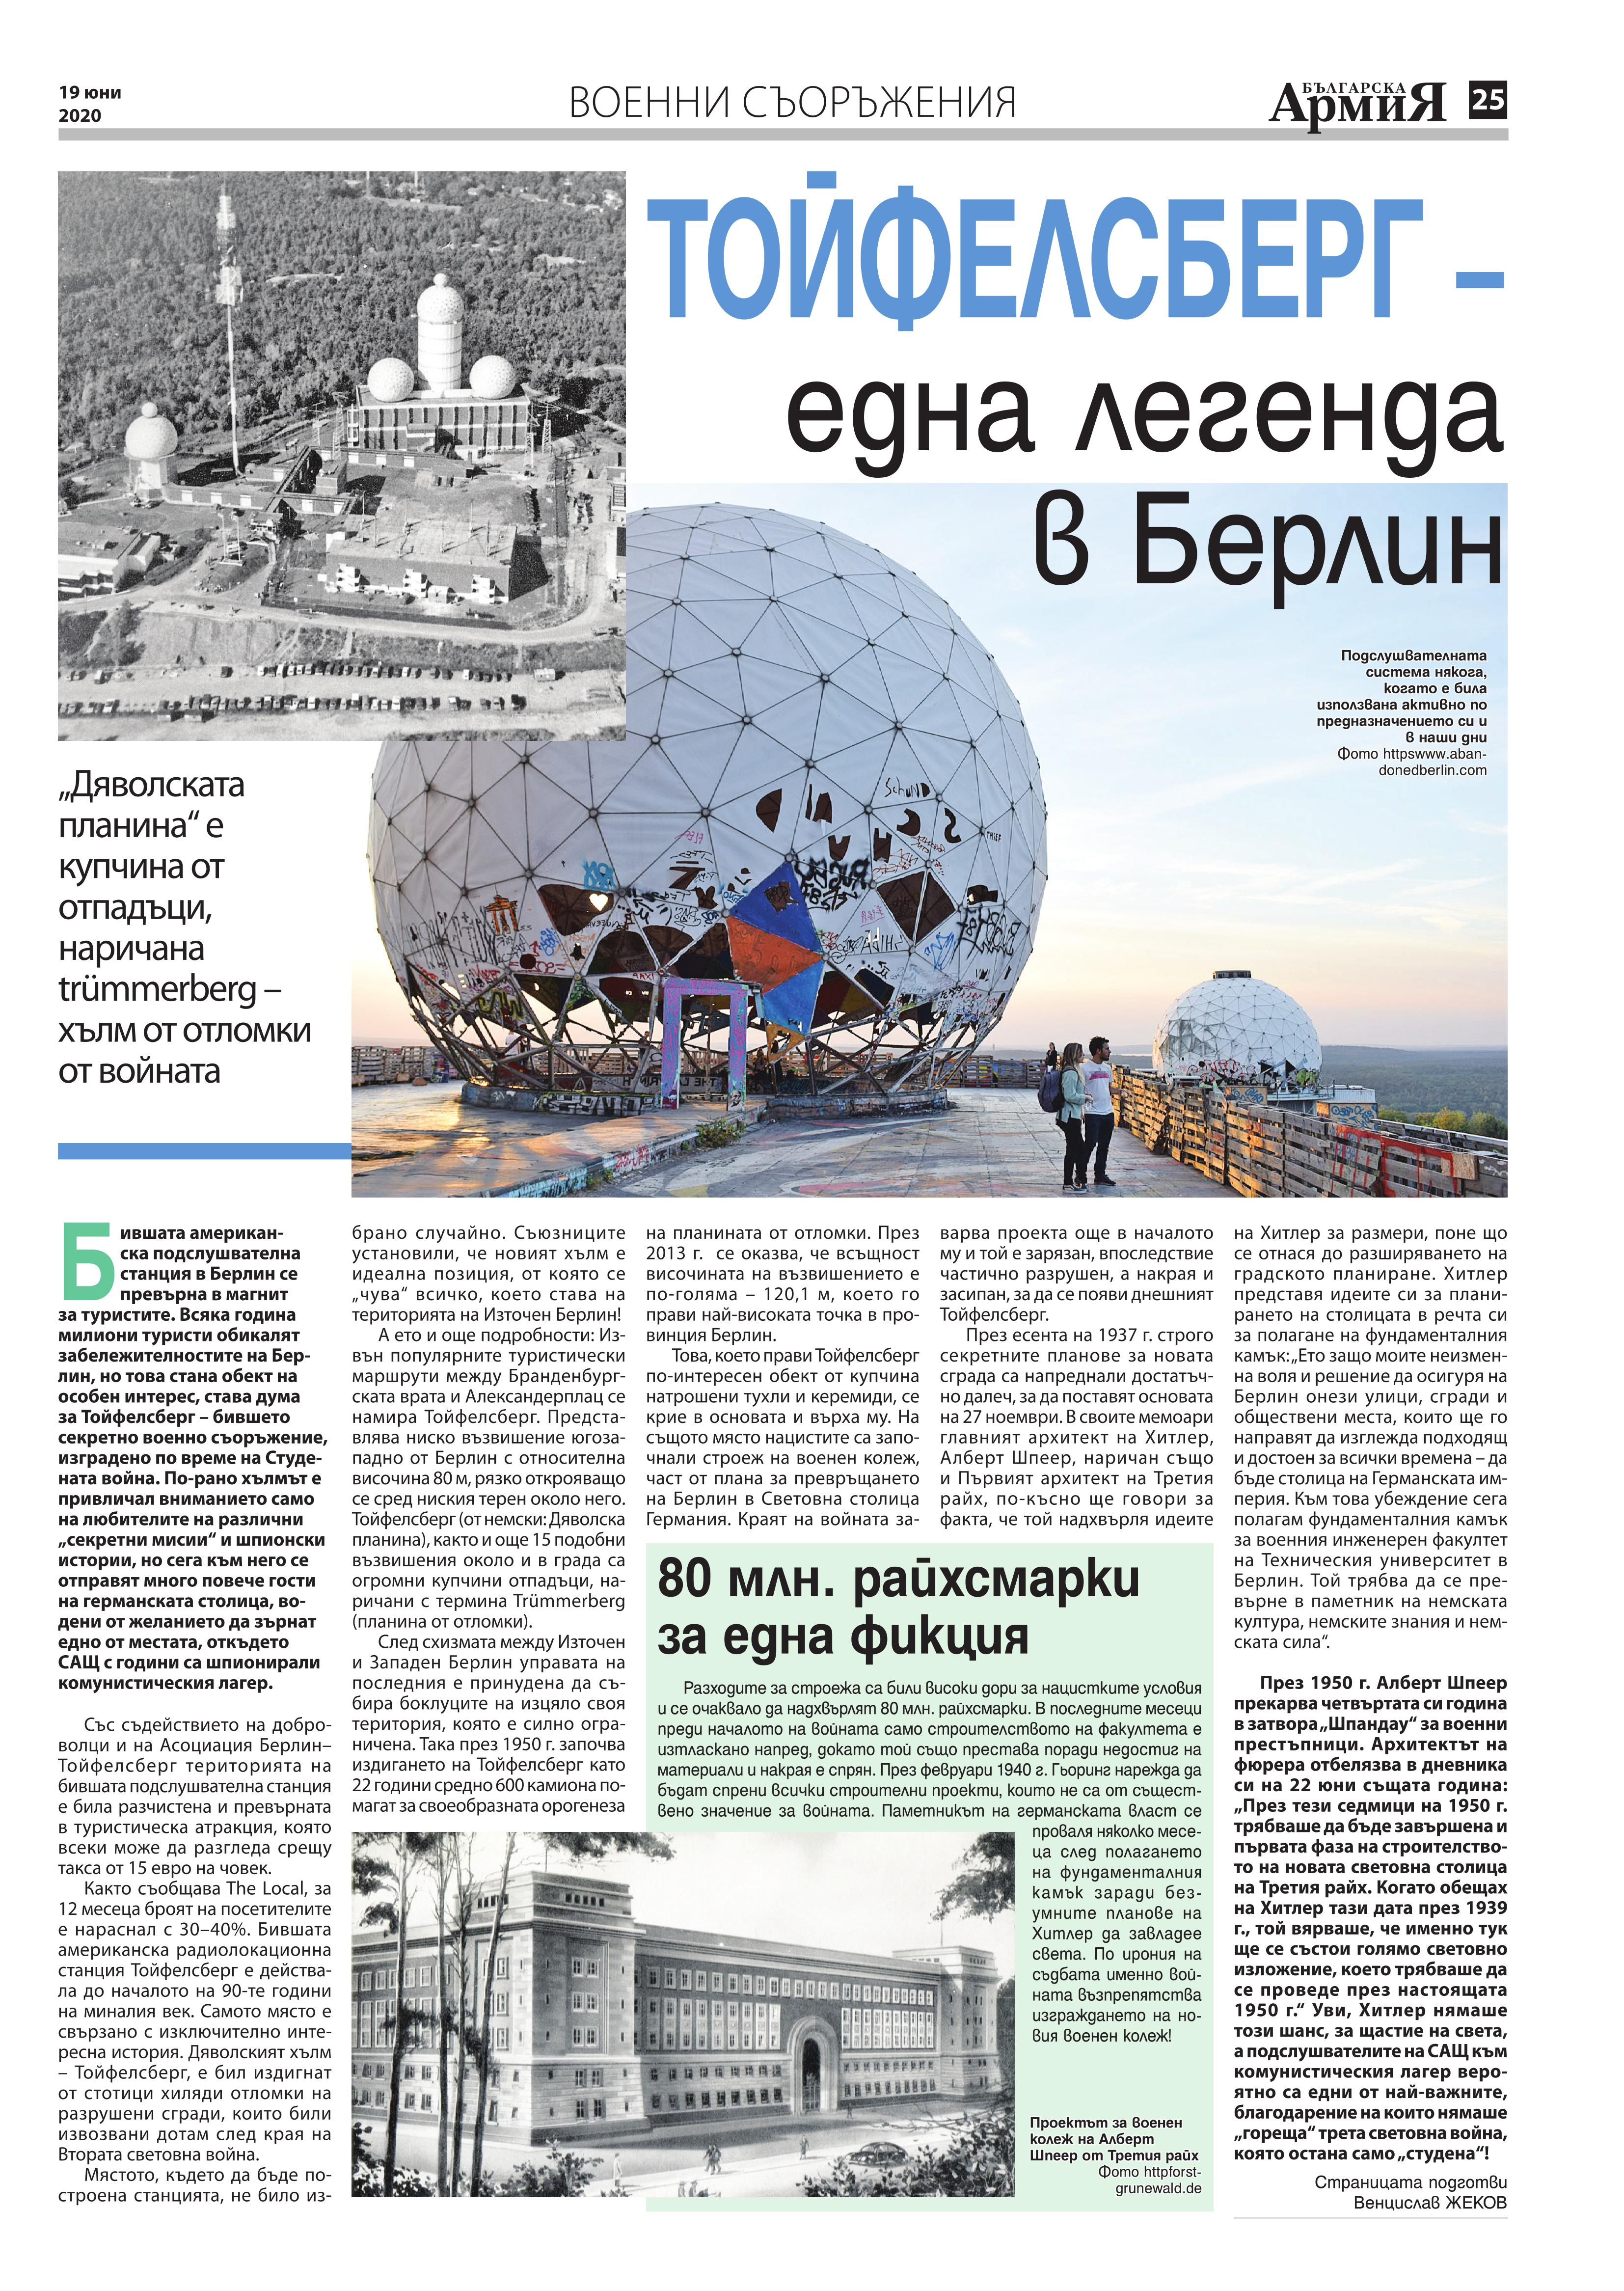 https://www.armymedia.bg/wp-content/uploads/2015/06/25.page1_-115.jpg